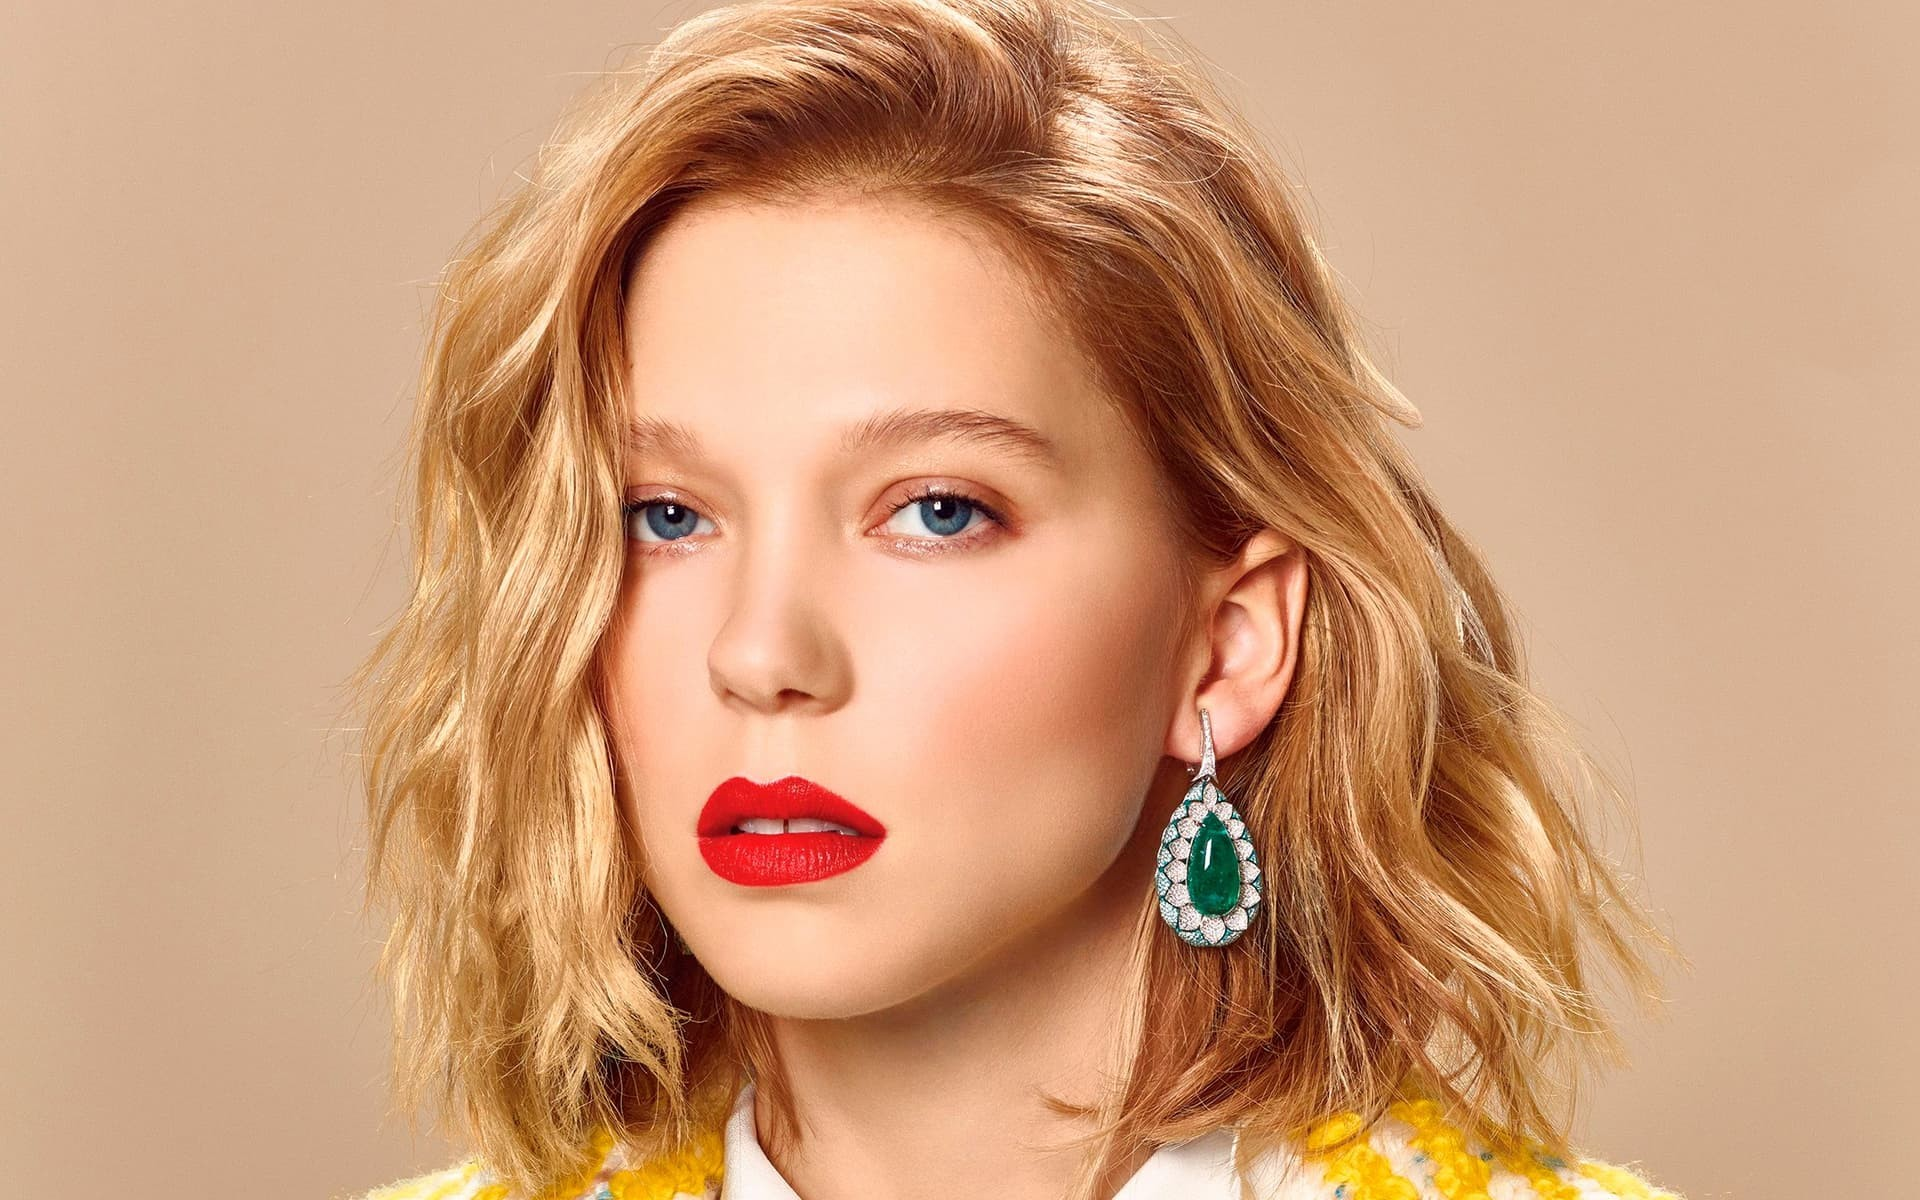 LACa Seydoux Wallpapers 1920x1080